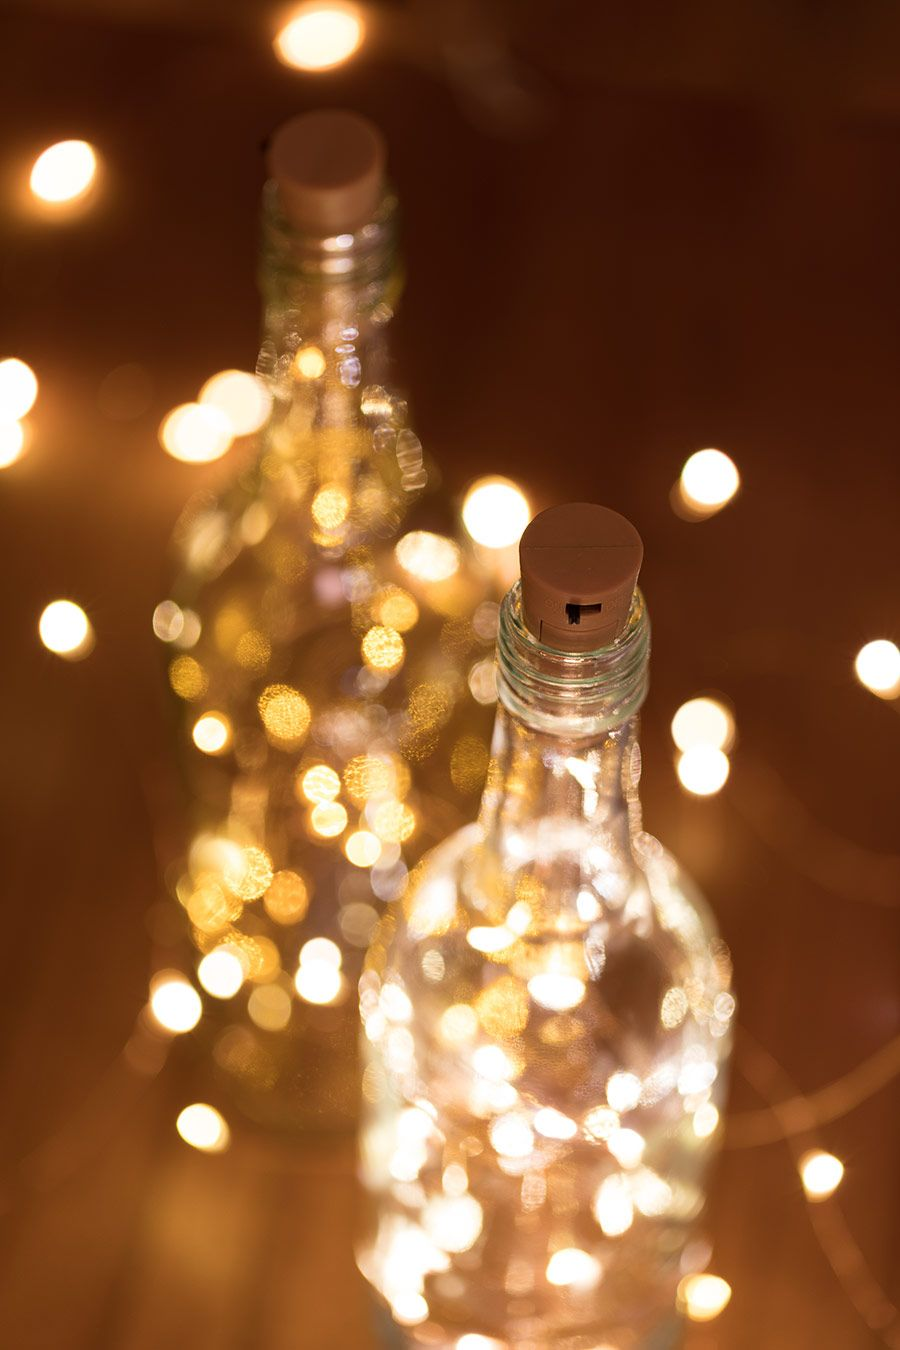 Wine Bottle LED Fairy Lights - Cork Shaped Battery Operated LED Lights w/ Copper Wire - 6.5ft | Super Bright LEDs